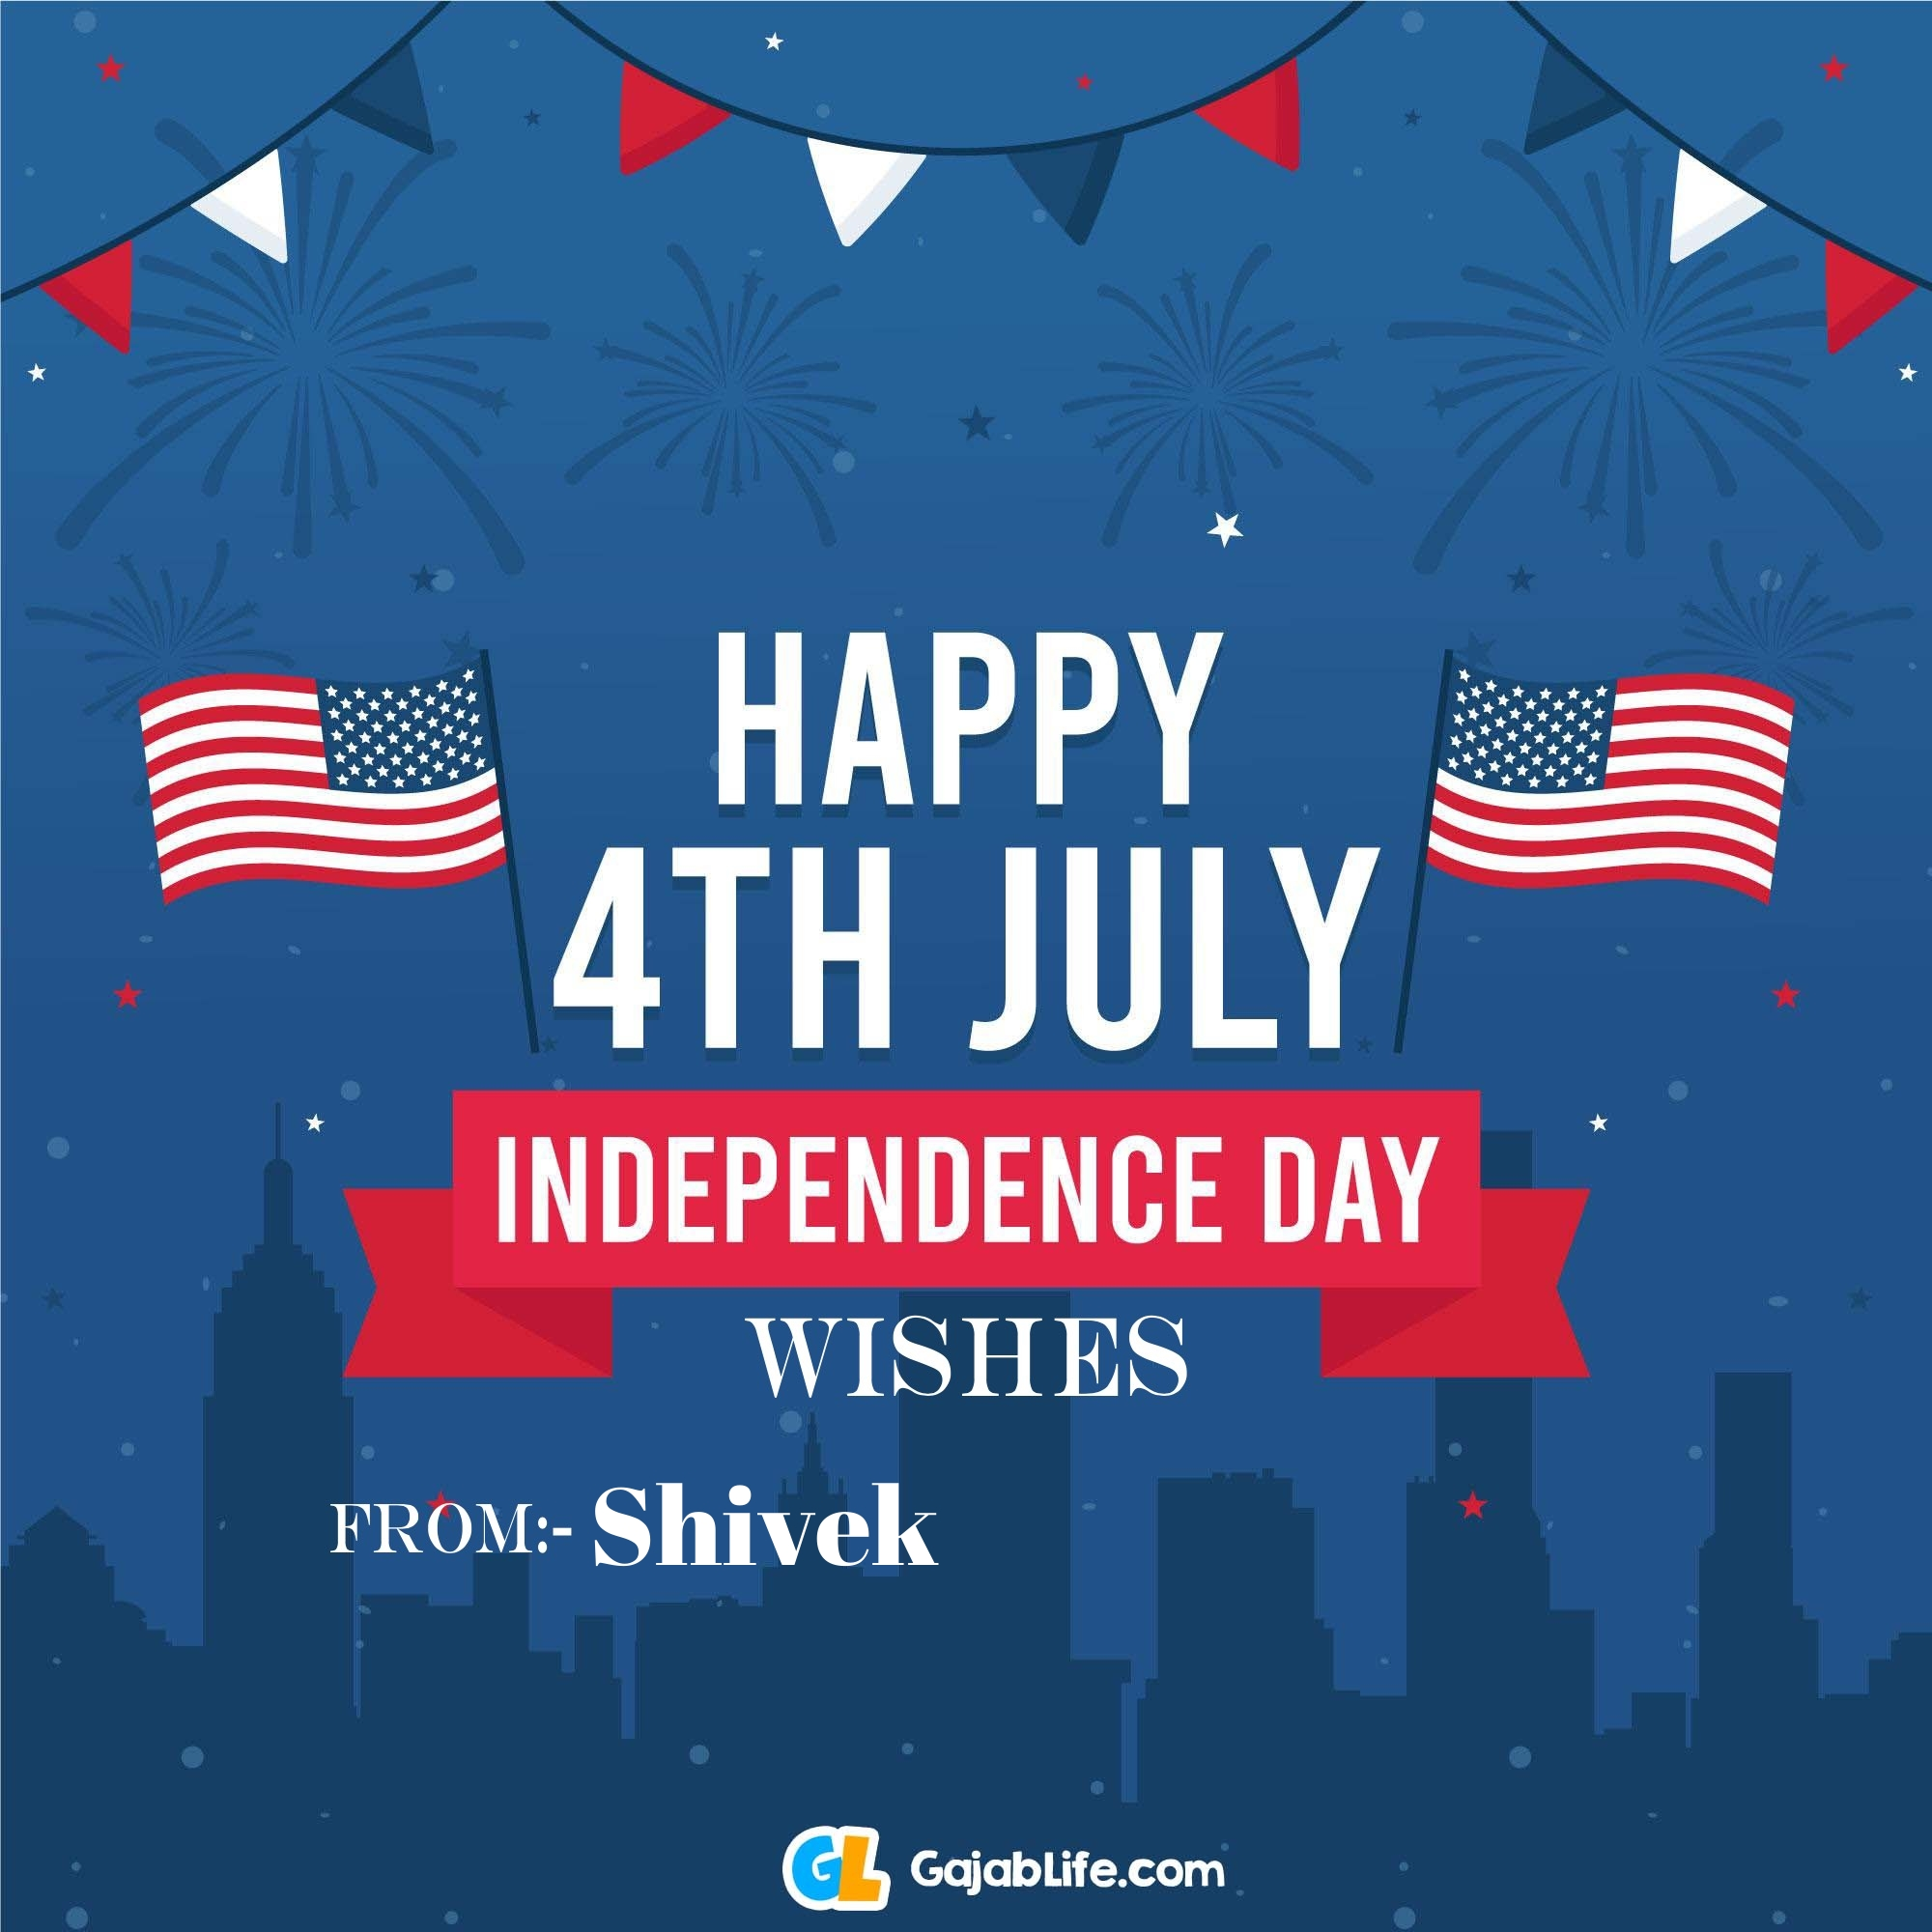 Shivek happy independence day united states of america images